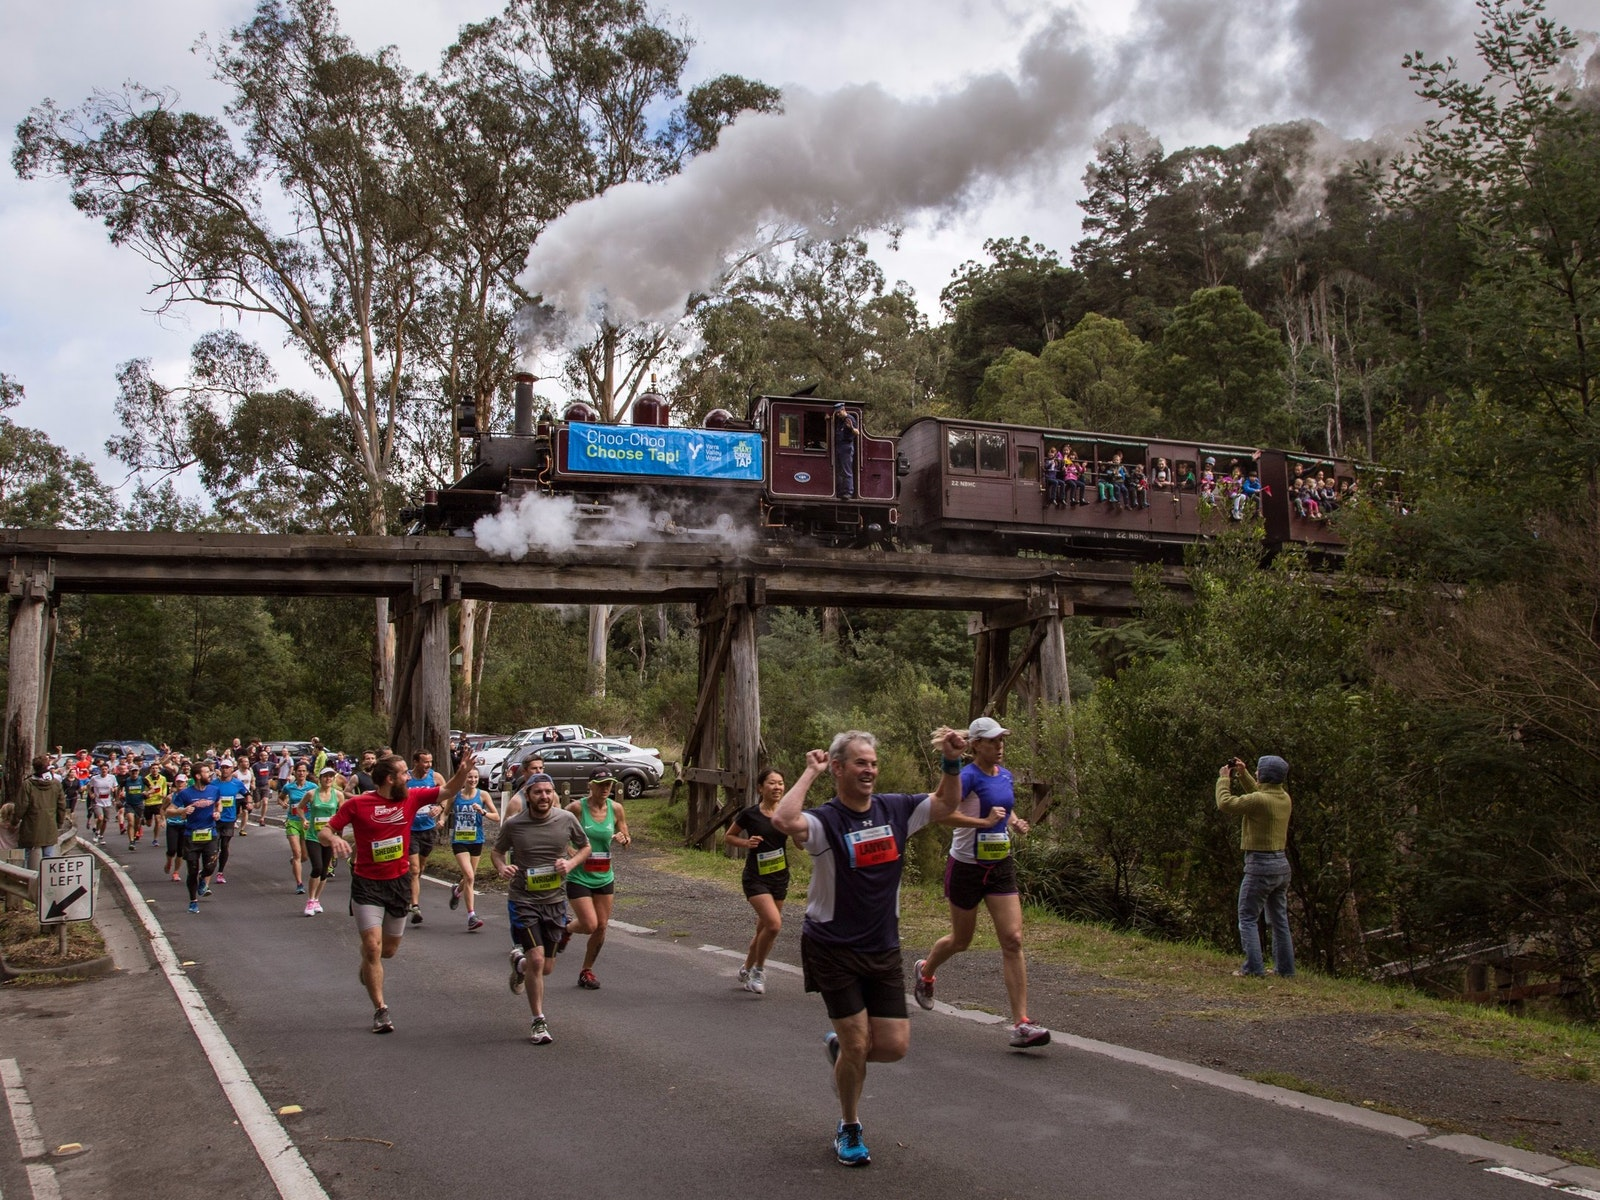 Great Train Race competitors run against Puffing Billy